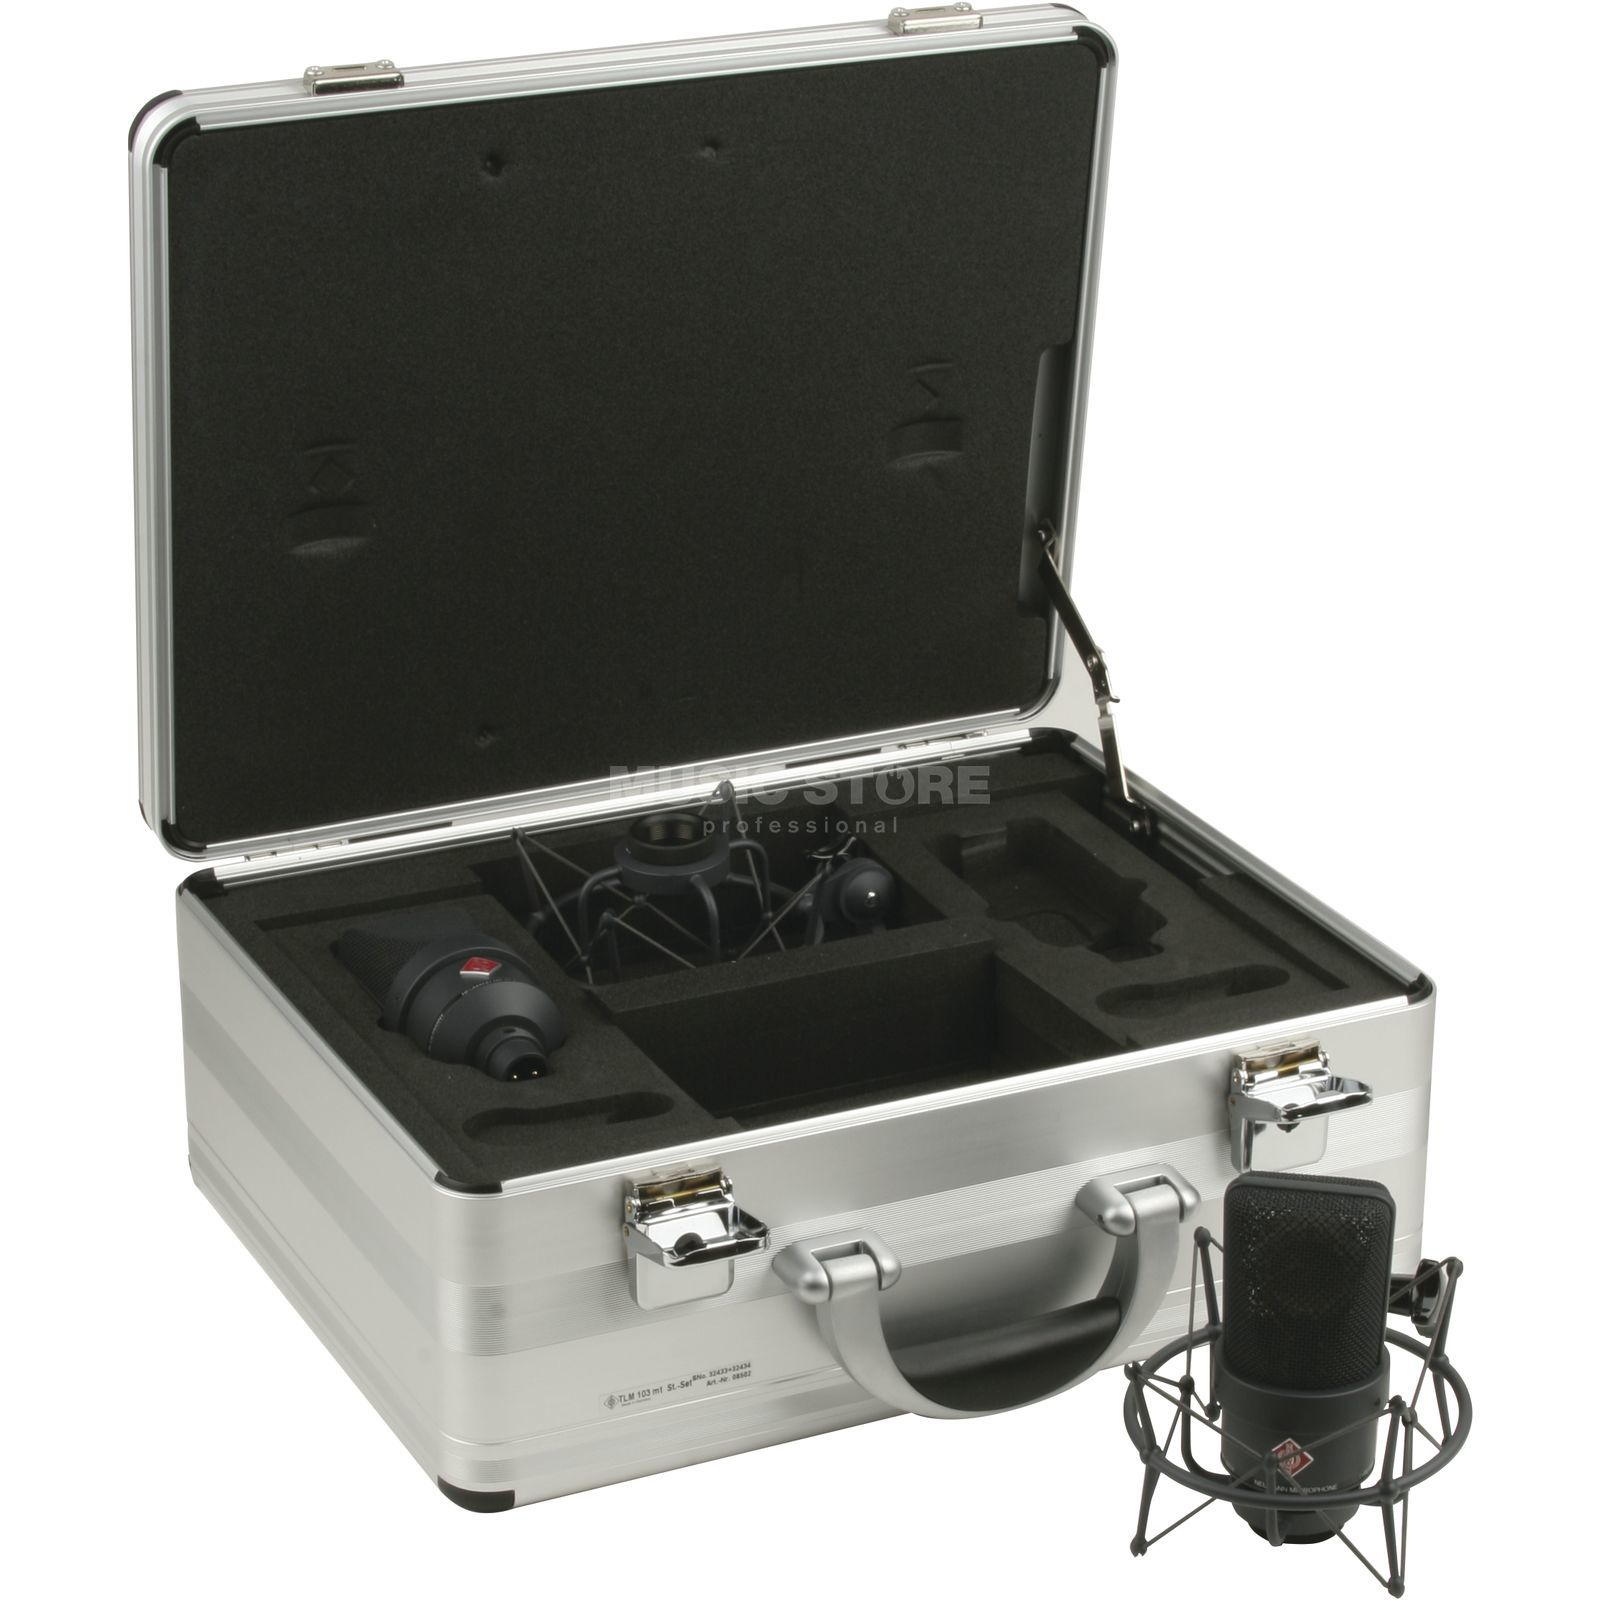 Neumann TLM 103 mt Stereo-Set black 2x Micro/2x EA1 El.Holder/Case Produktbillede